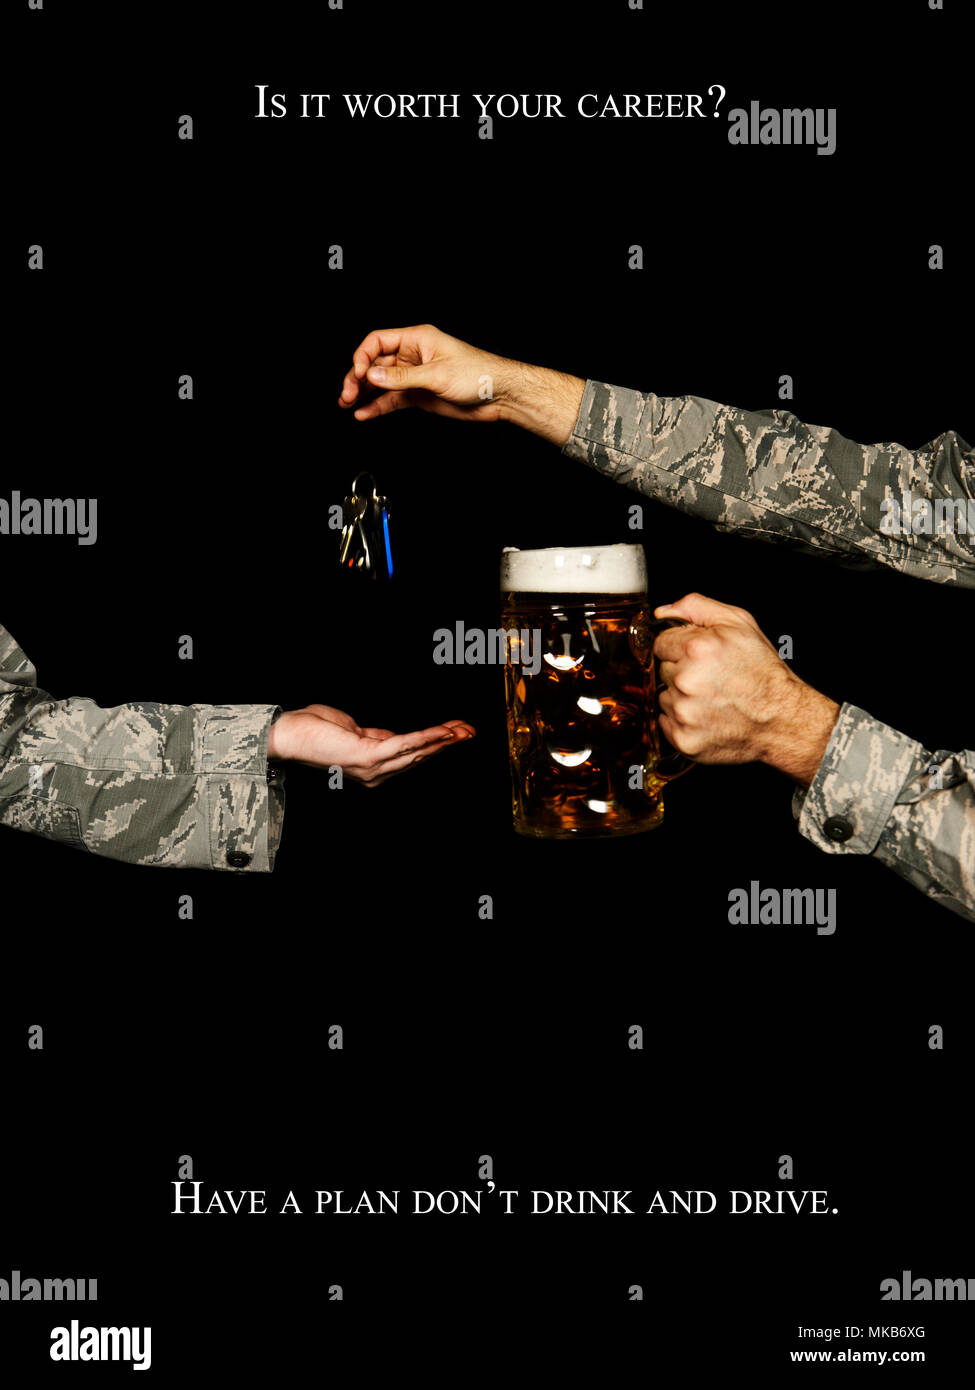 The legal limit for blood alcohol content in Germany is .05 having just one standard 1 liter German beer can put you over the BAC limit. Driving under the influence can have a serious negative impact on your Air Force career. (U.S. Air Force illustration by Staff Sgt. Jonathan Snyder) - Stock Image